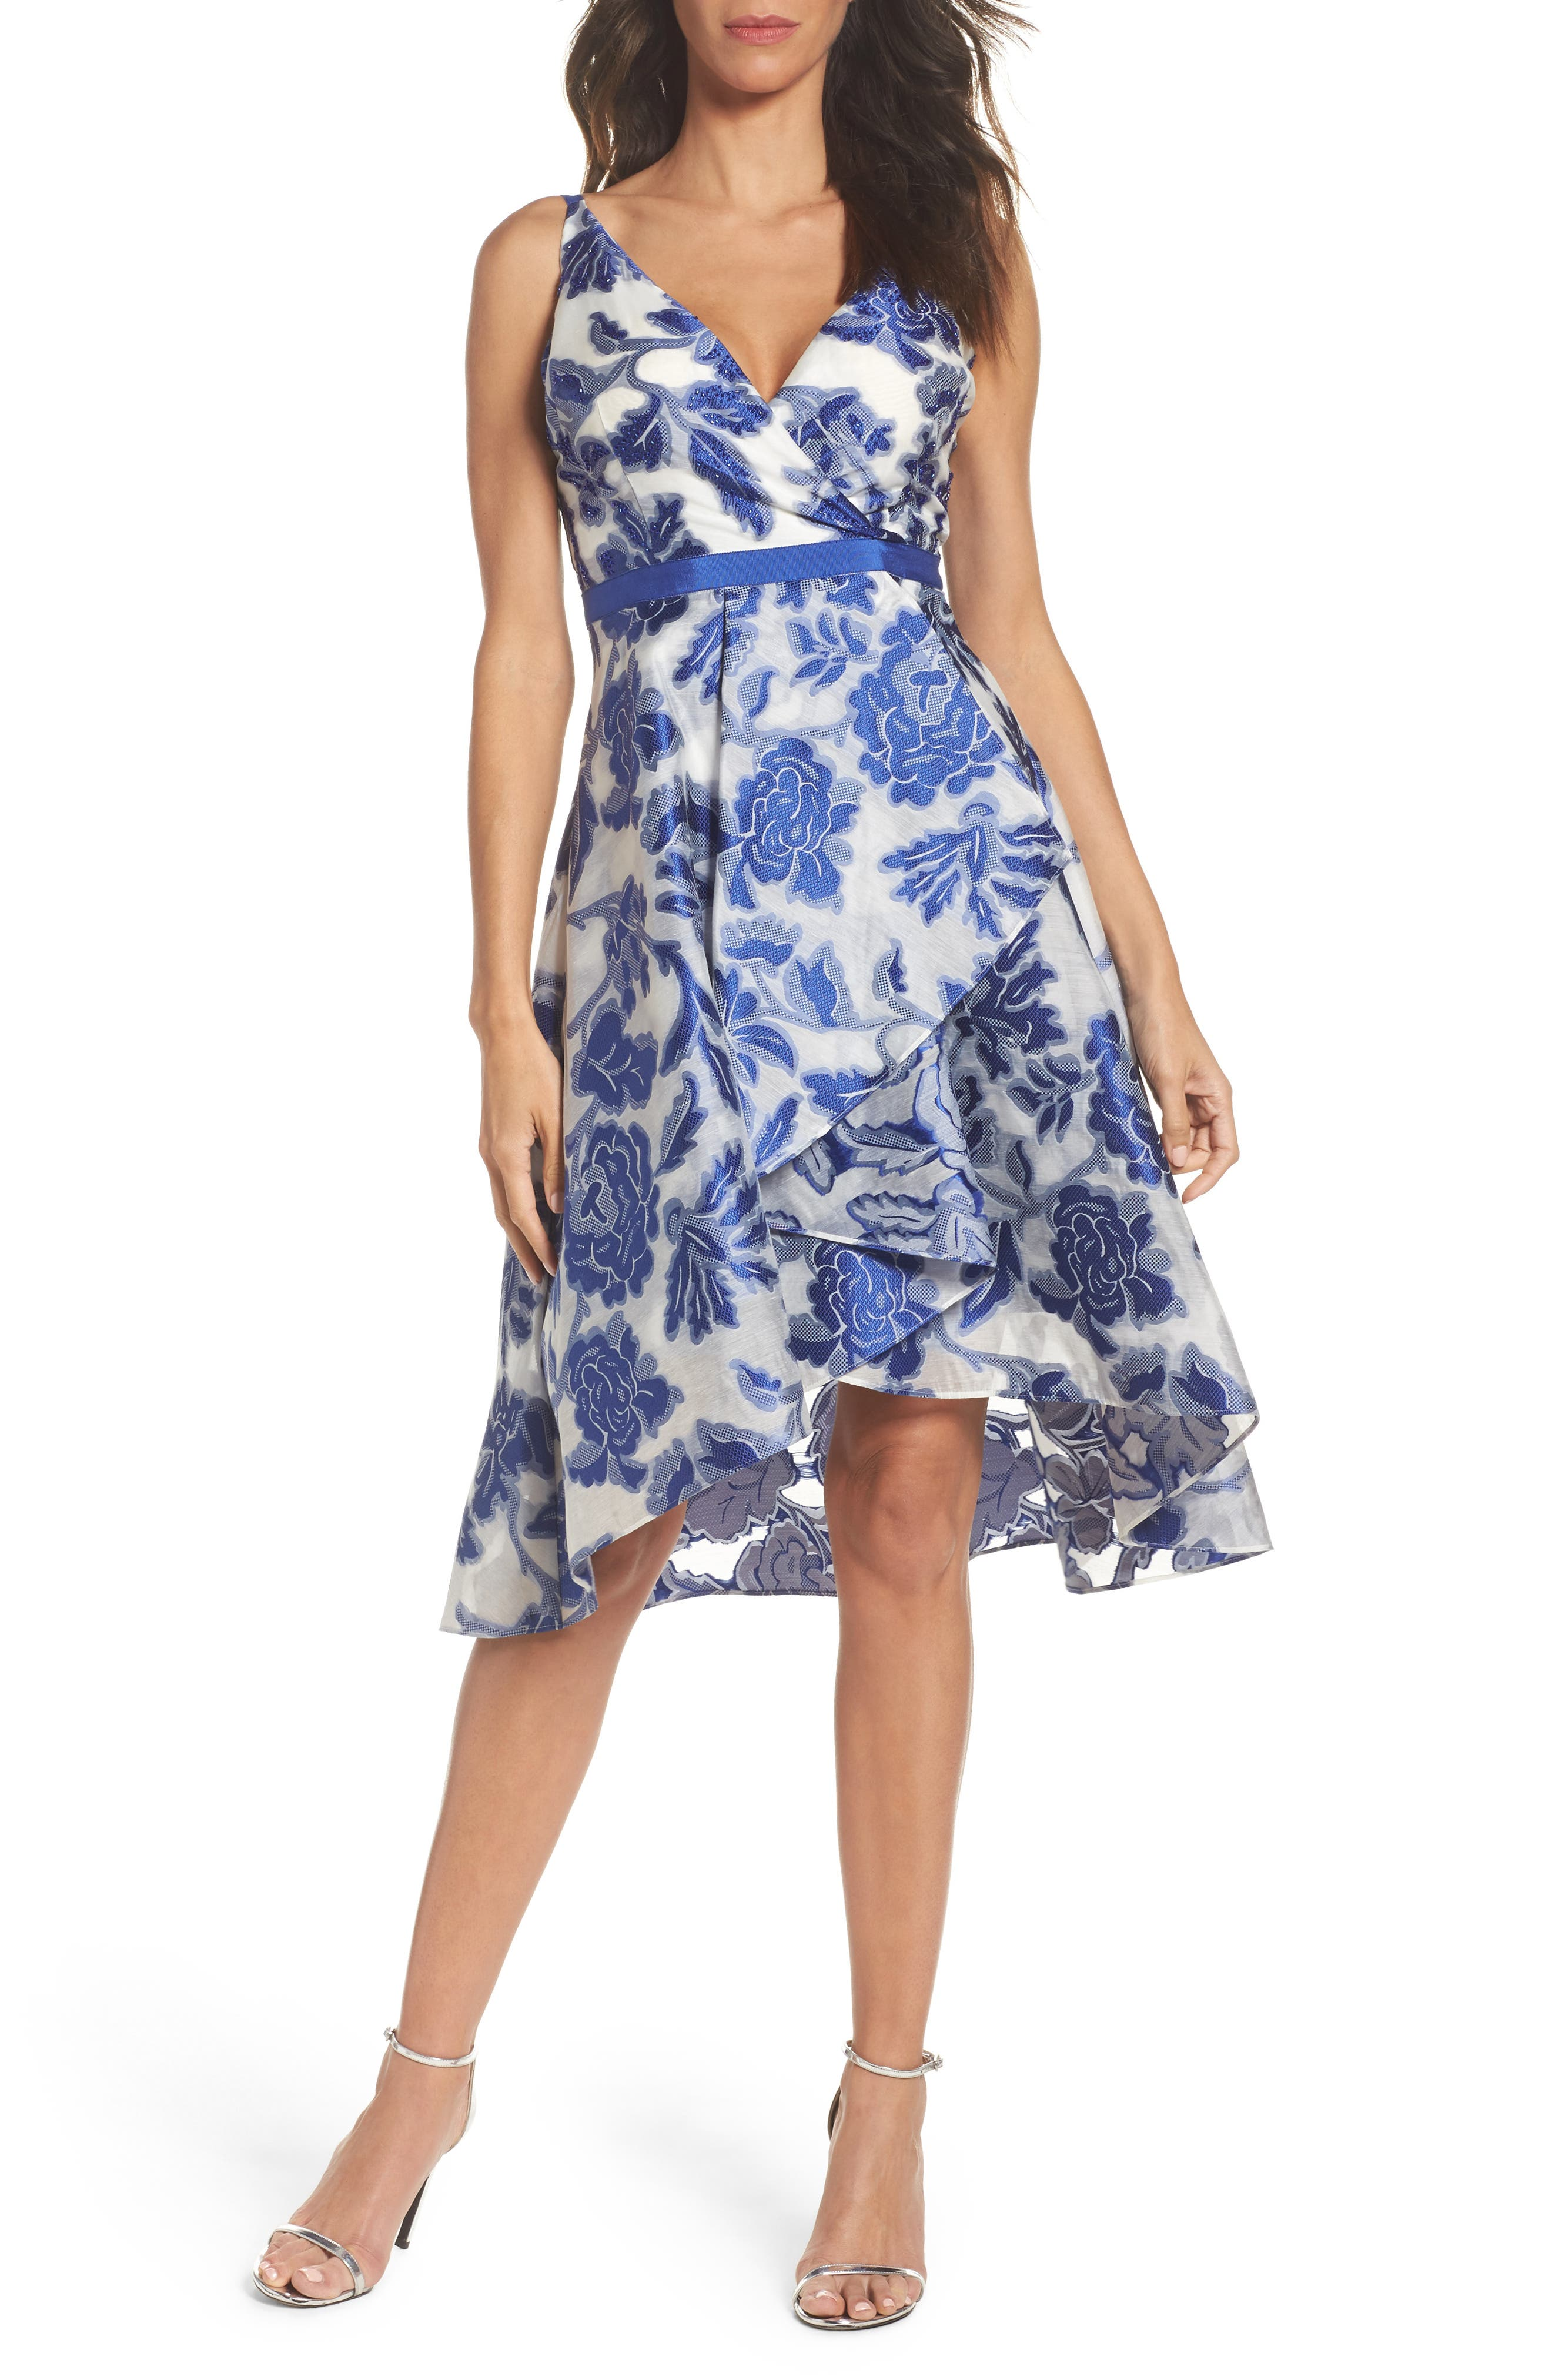 Alternate Image 1 Selected - Adrianna Papell Burnout Jacquard Fit & Flare Dress